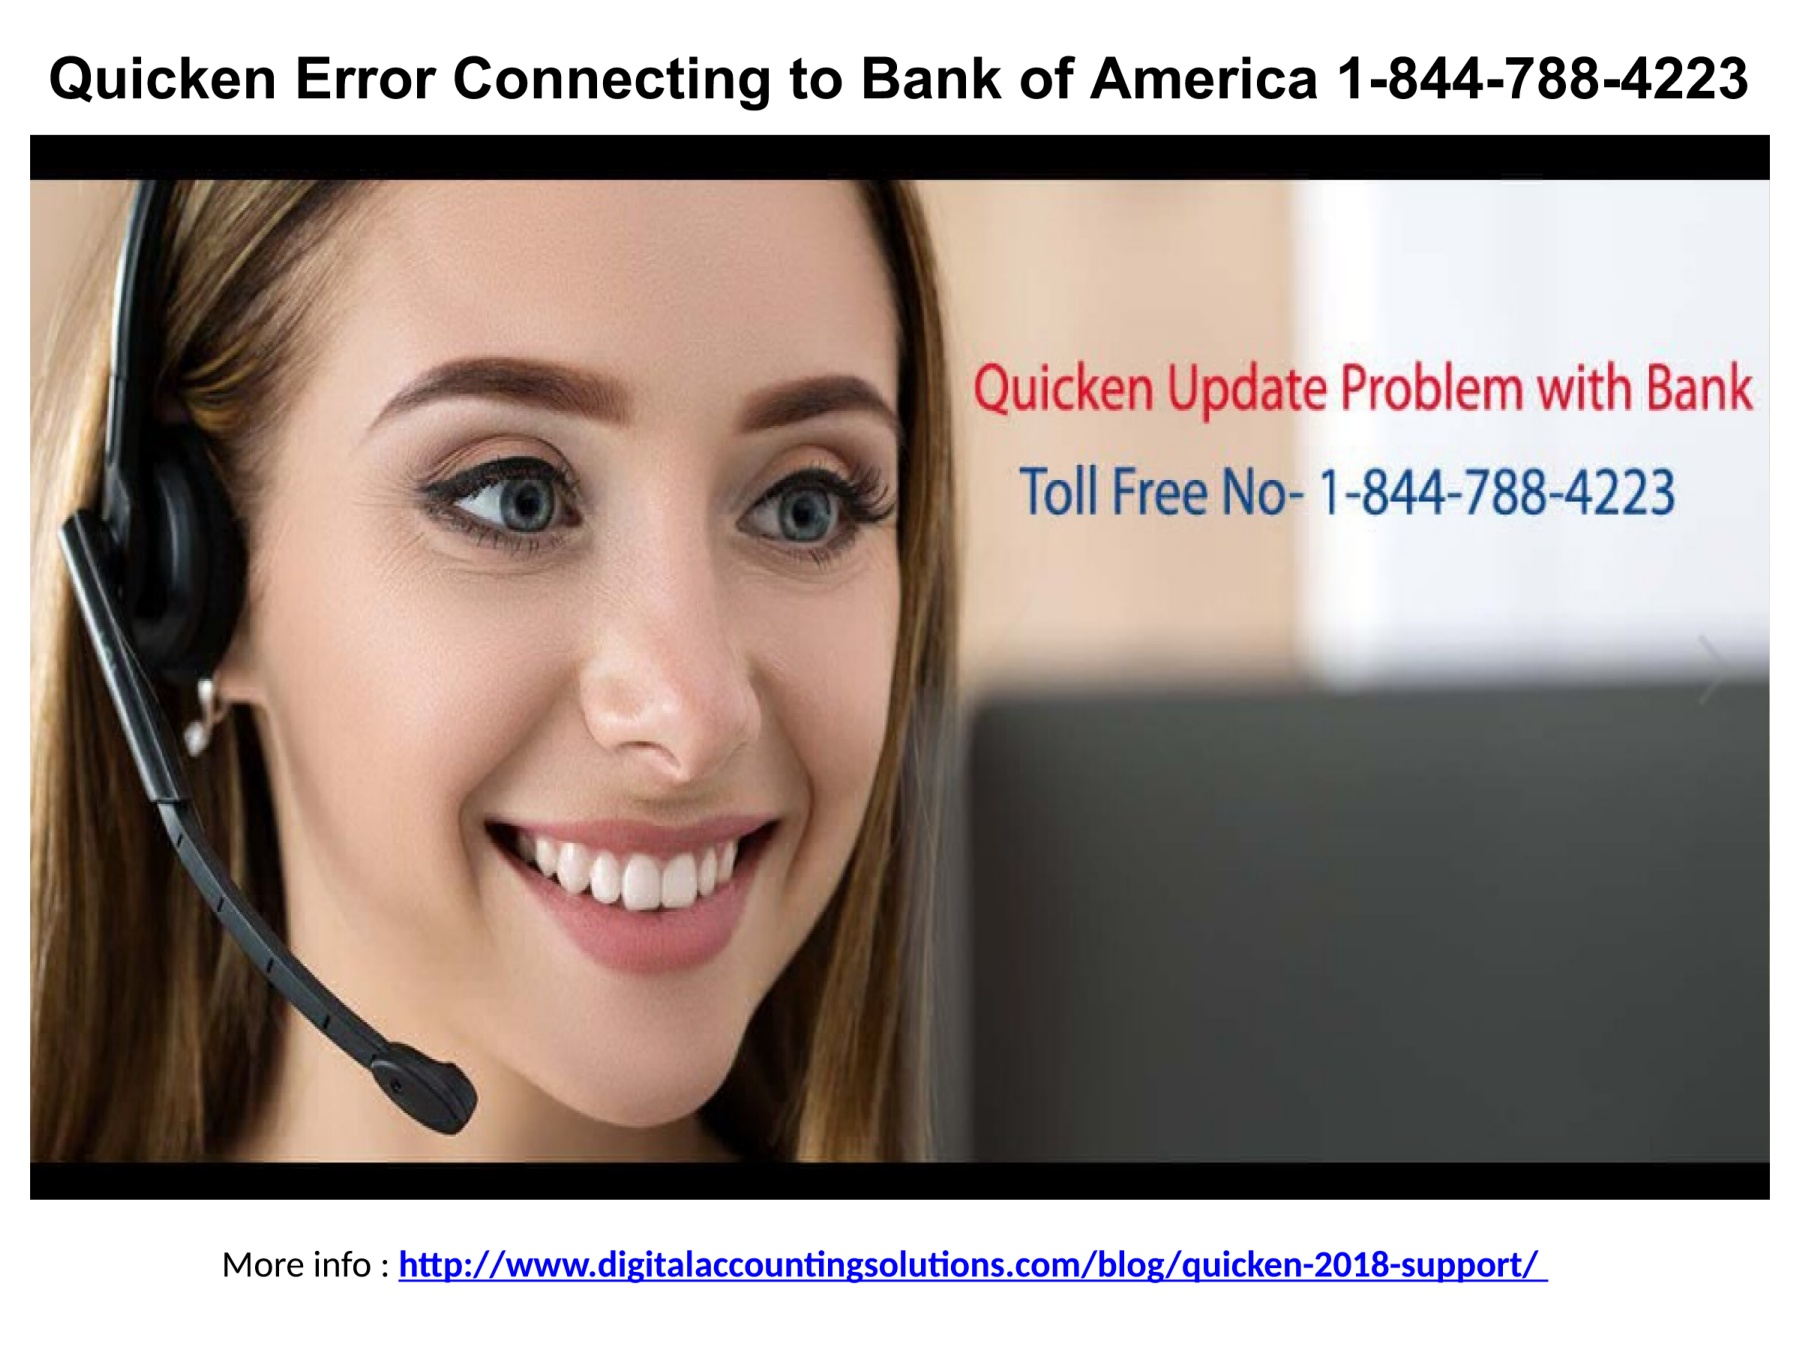 Quicken Installation Related Problems 1-844-788-4223 Pages 1